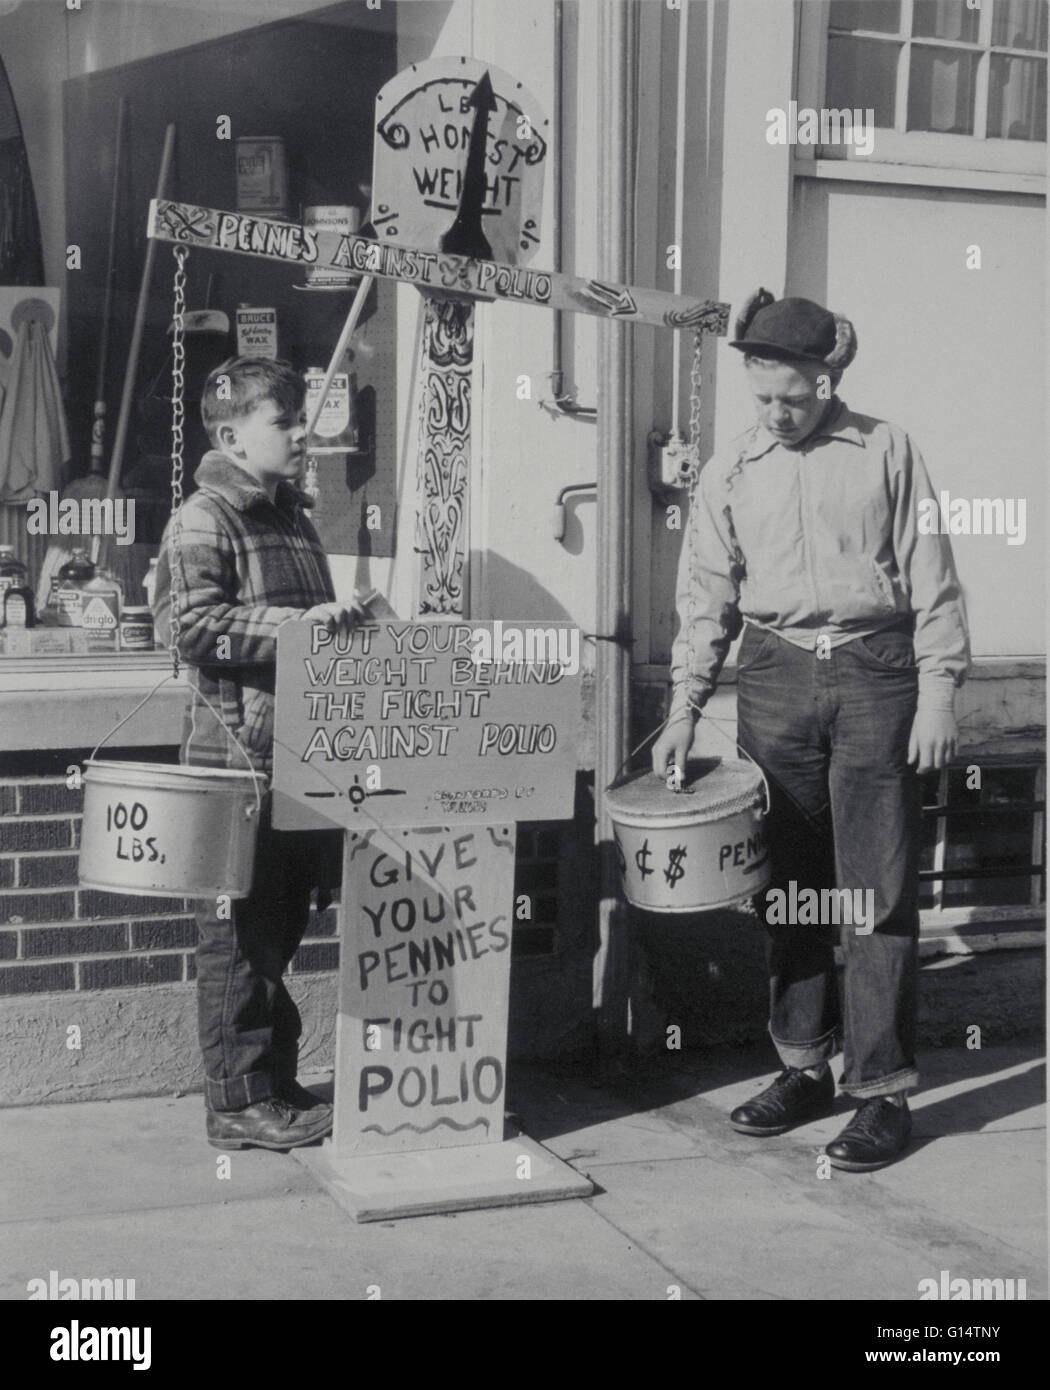 Boys raise money for the fight against Polio. United States, circa early 1950's. Polio is an acute infectious - Stock Image